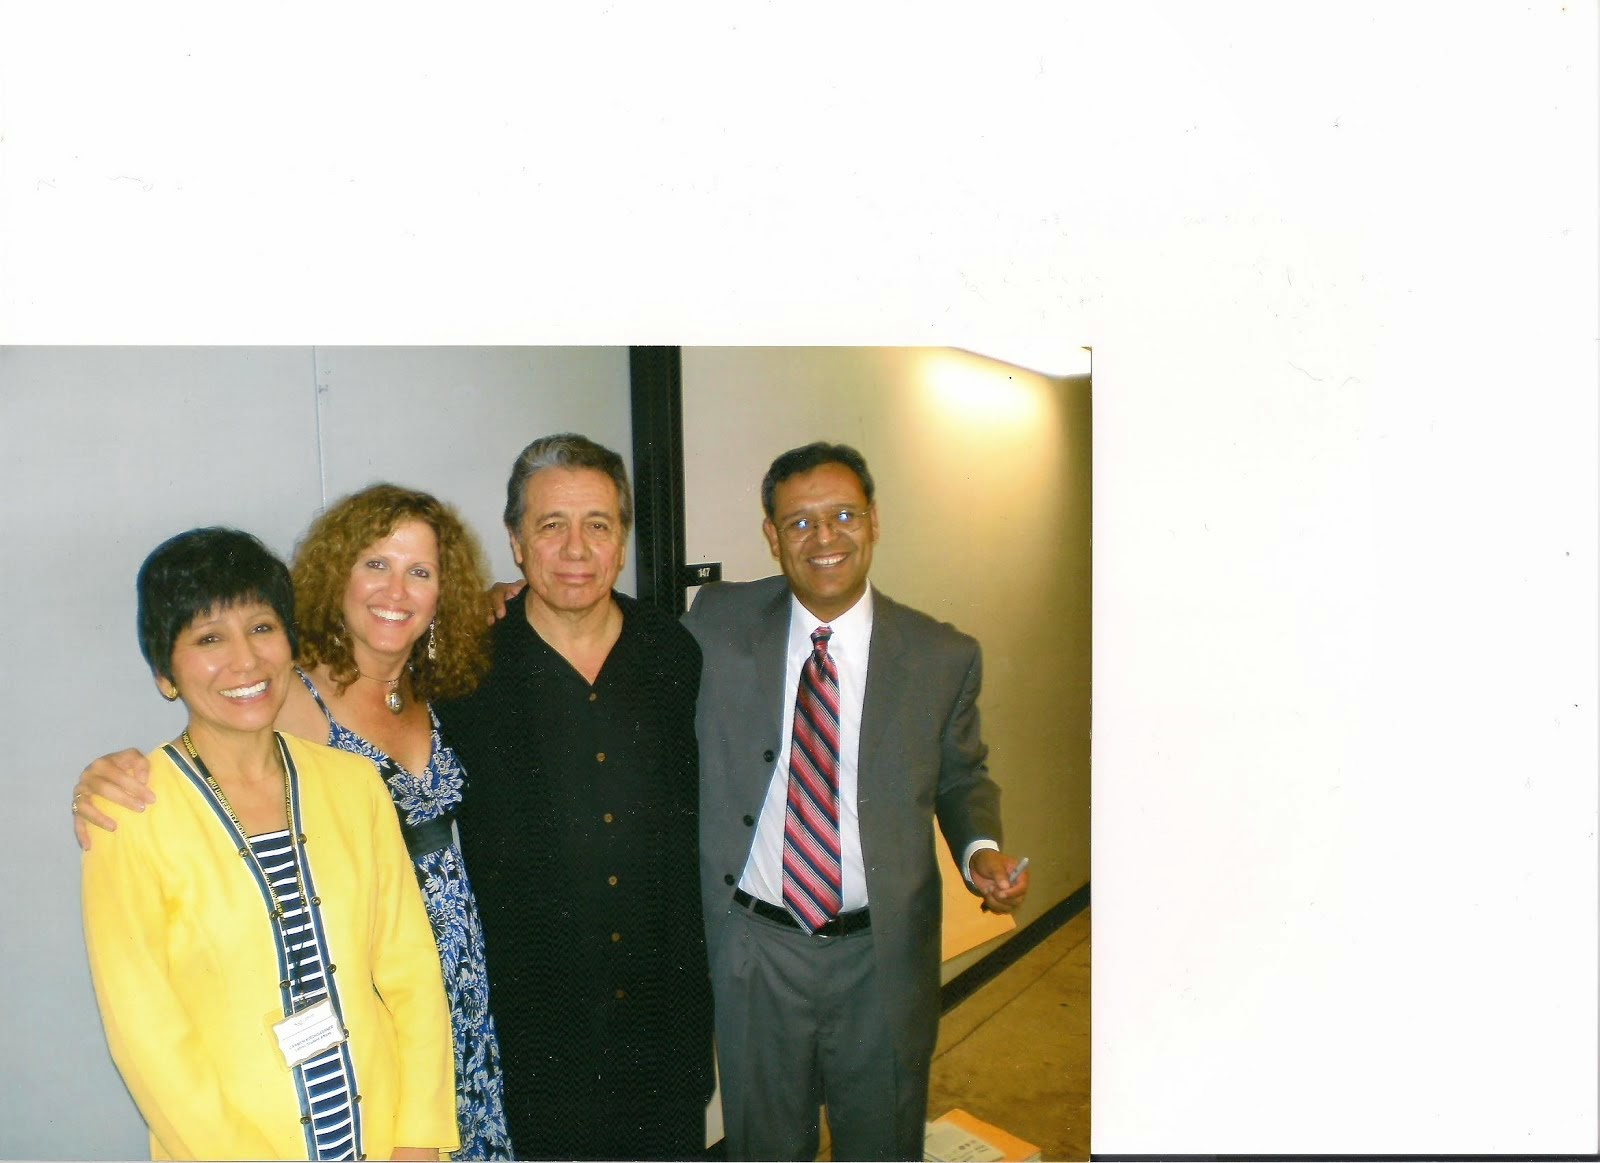 Mom and friends with Edward James Olmos